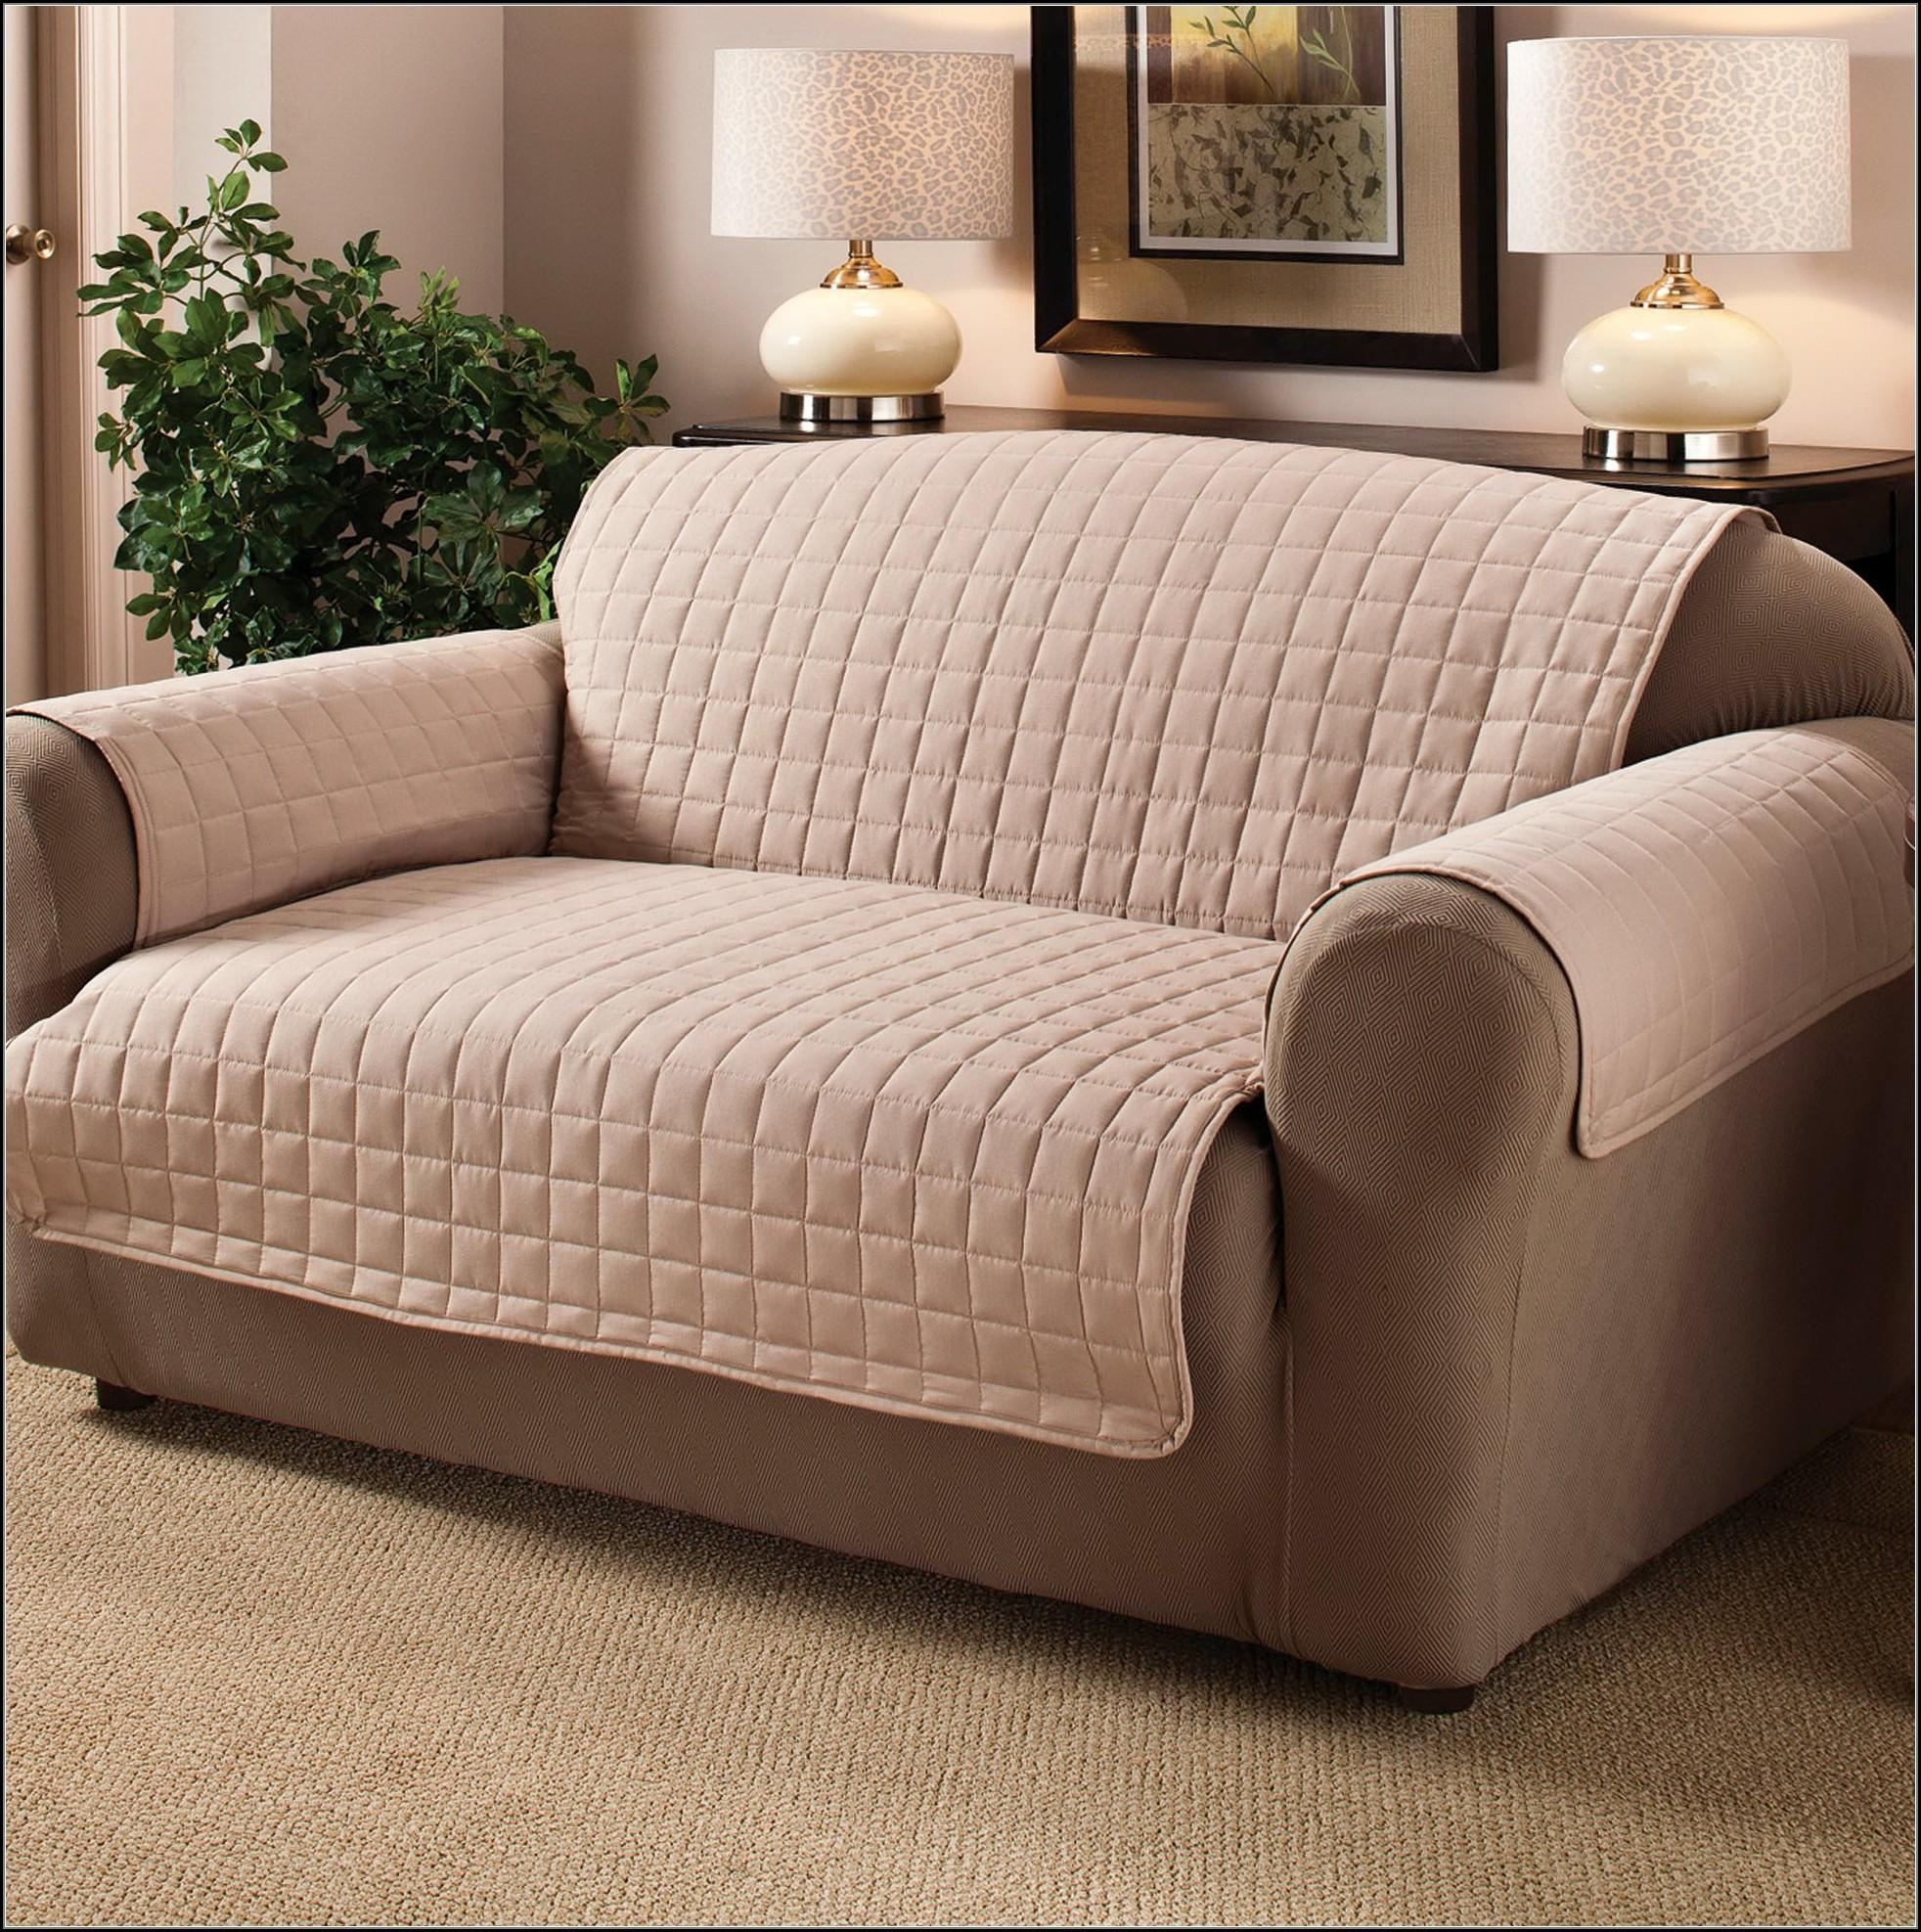 Sofa And Loveseat Covers At Walmart – Sofa : Home Furniture Ideas Regarding Sofa And Loveseat Covers (View 19 of 20)